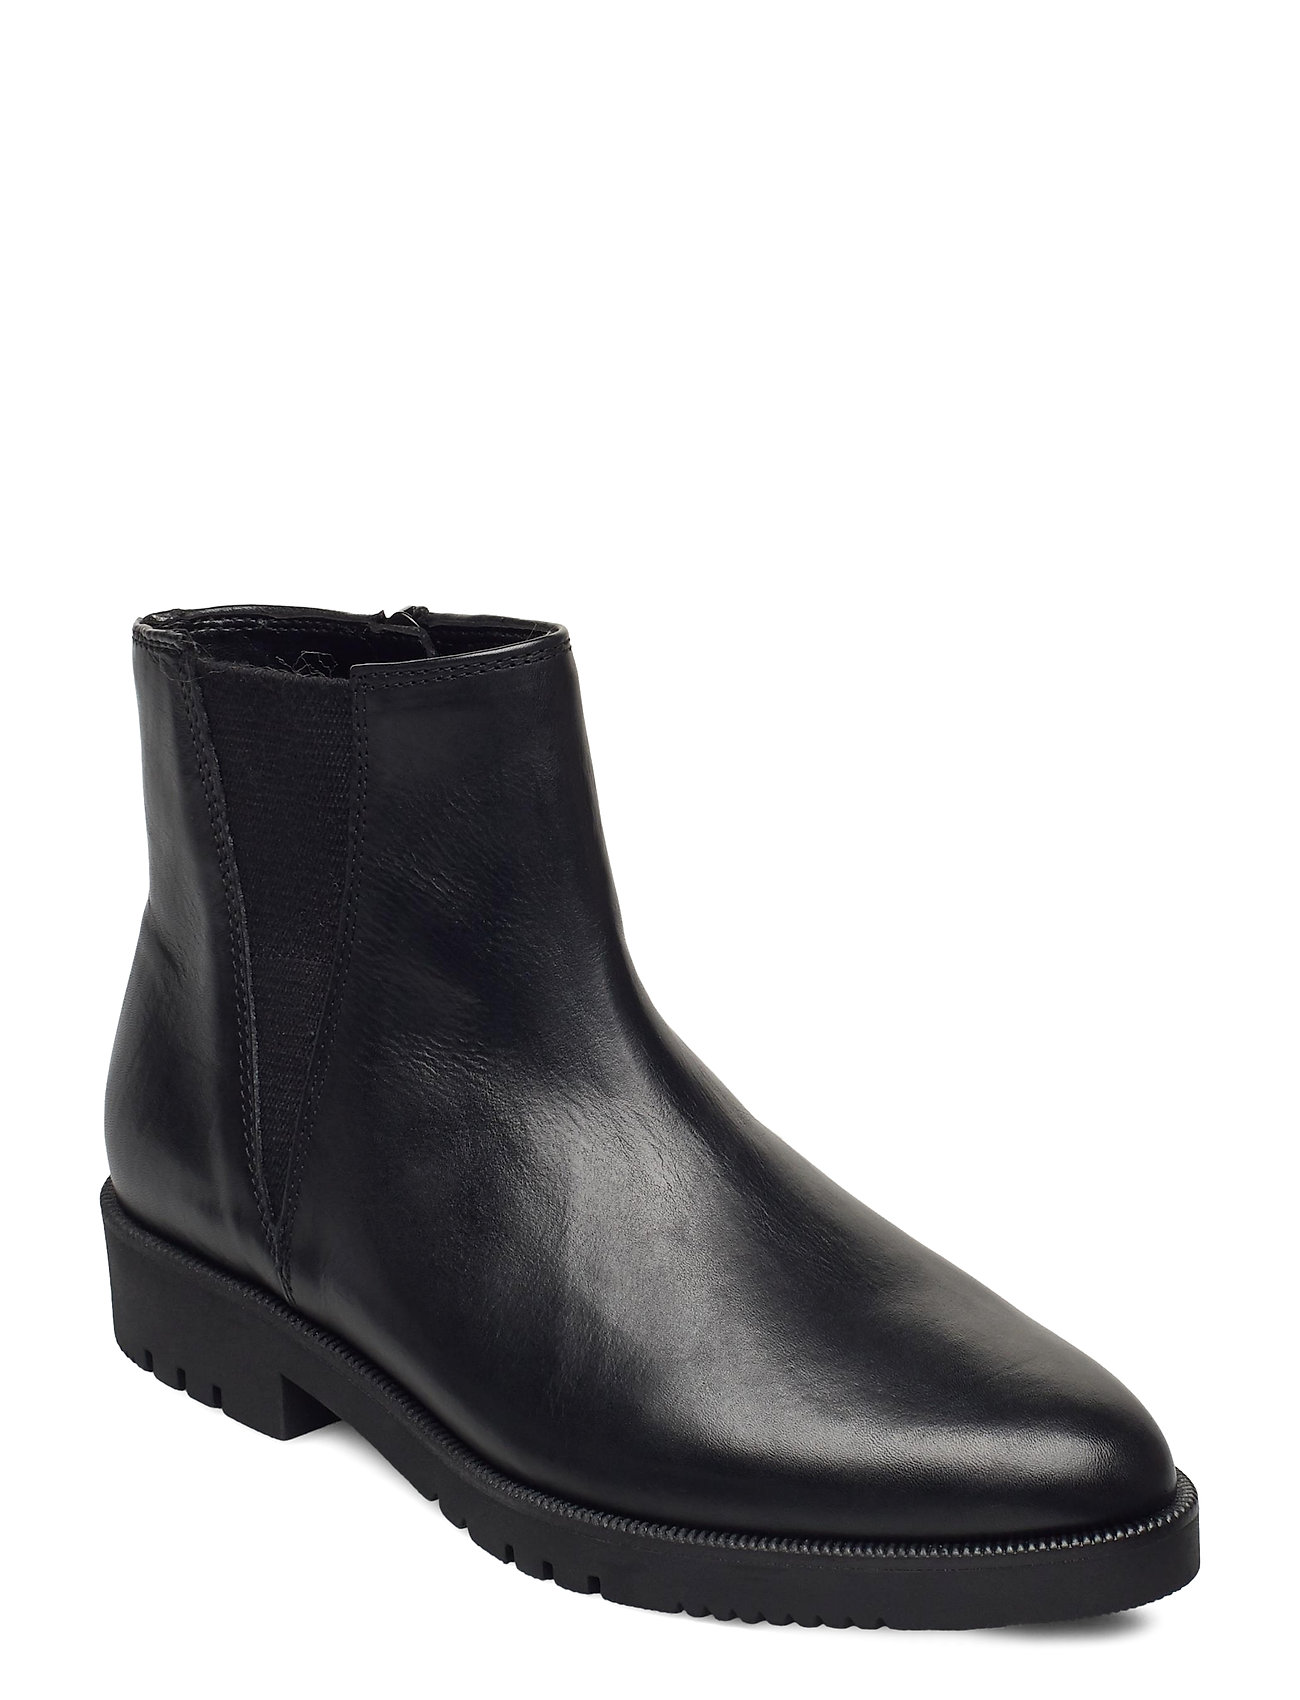 Image of Ankle Boot Shoes Boots Ankle Boots Ankle Boot - Heel Sort Gabor (3462700139)